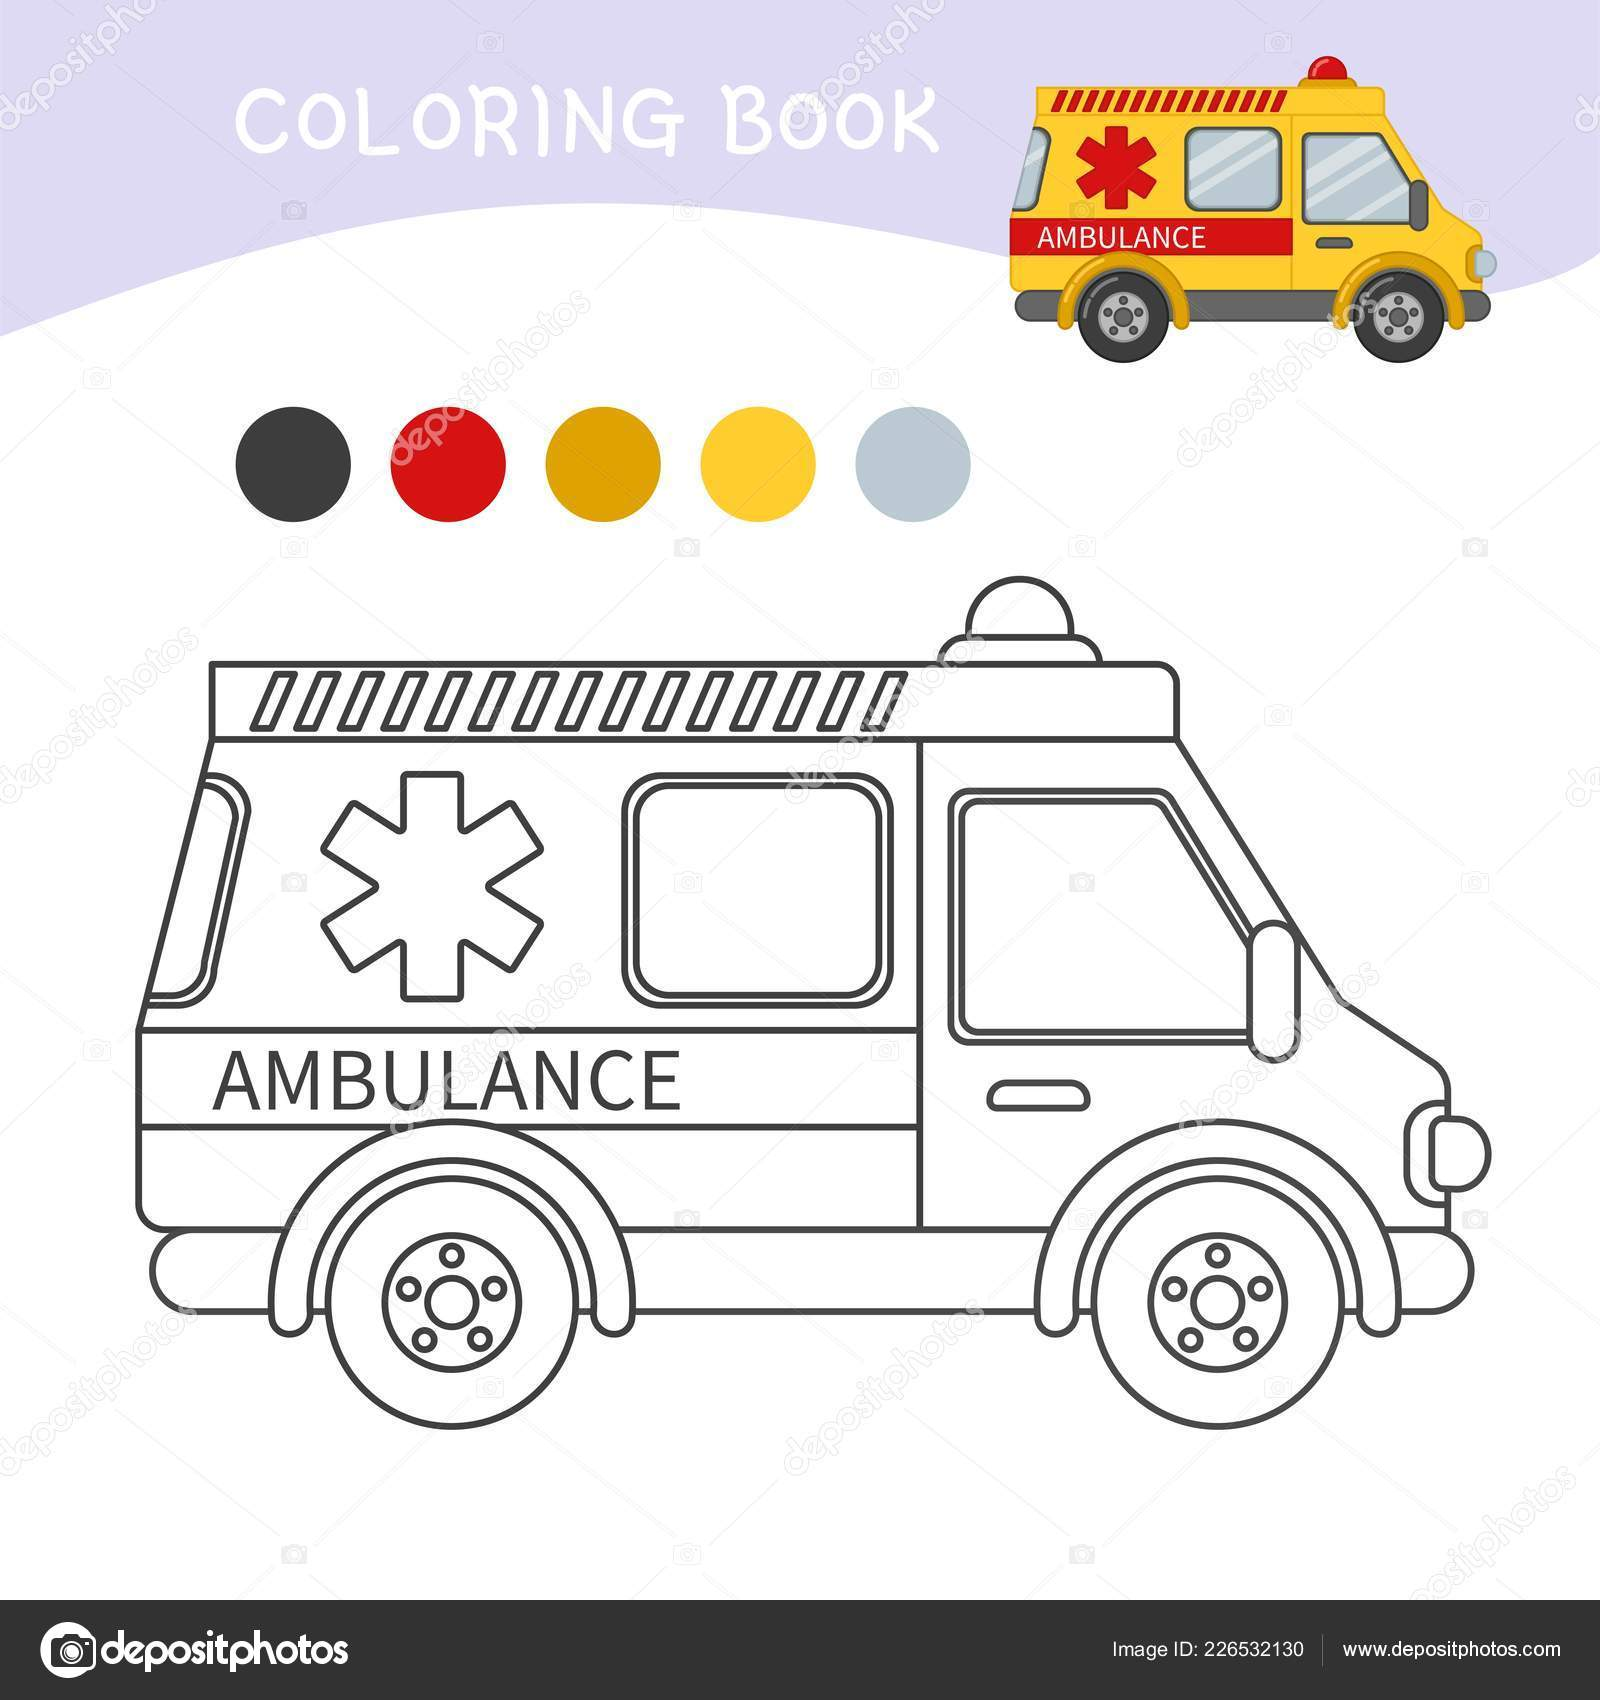 Coloring Page Outline Of Cartoon Doctor With Ambulance Car Vector Image By C Oleon17 Vector Stock 114576826